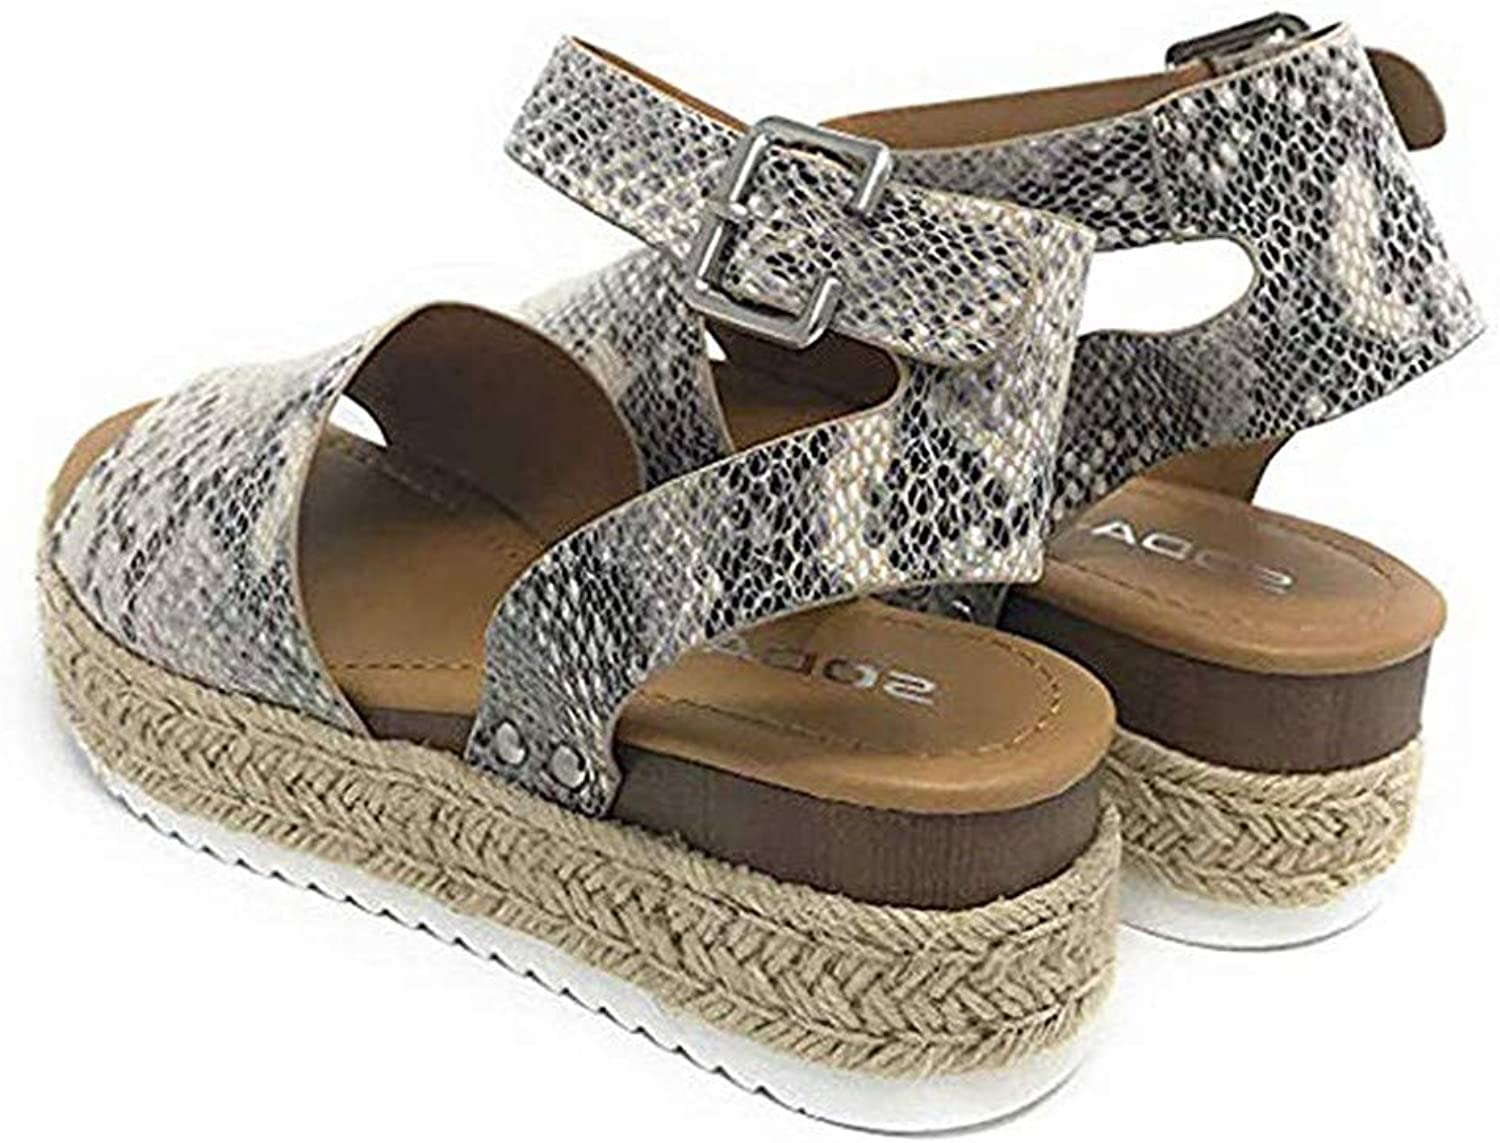 Sandals Women Summer Retro Wedges Peep Toe Buckle Ankle Strappy for Ladies Fashion Flat Lace Up 5 cm High Heels Leather Slingback Platform shoes Casual Comfy Espadrilles (Snake),Snake,40